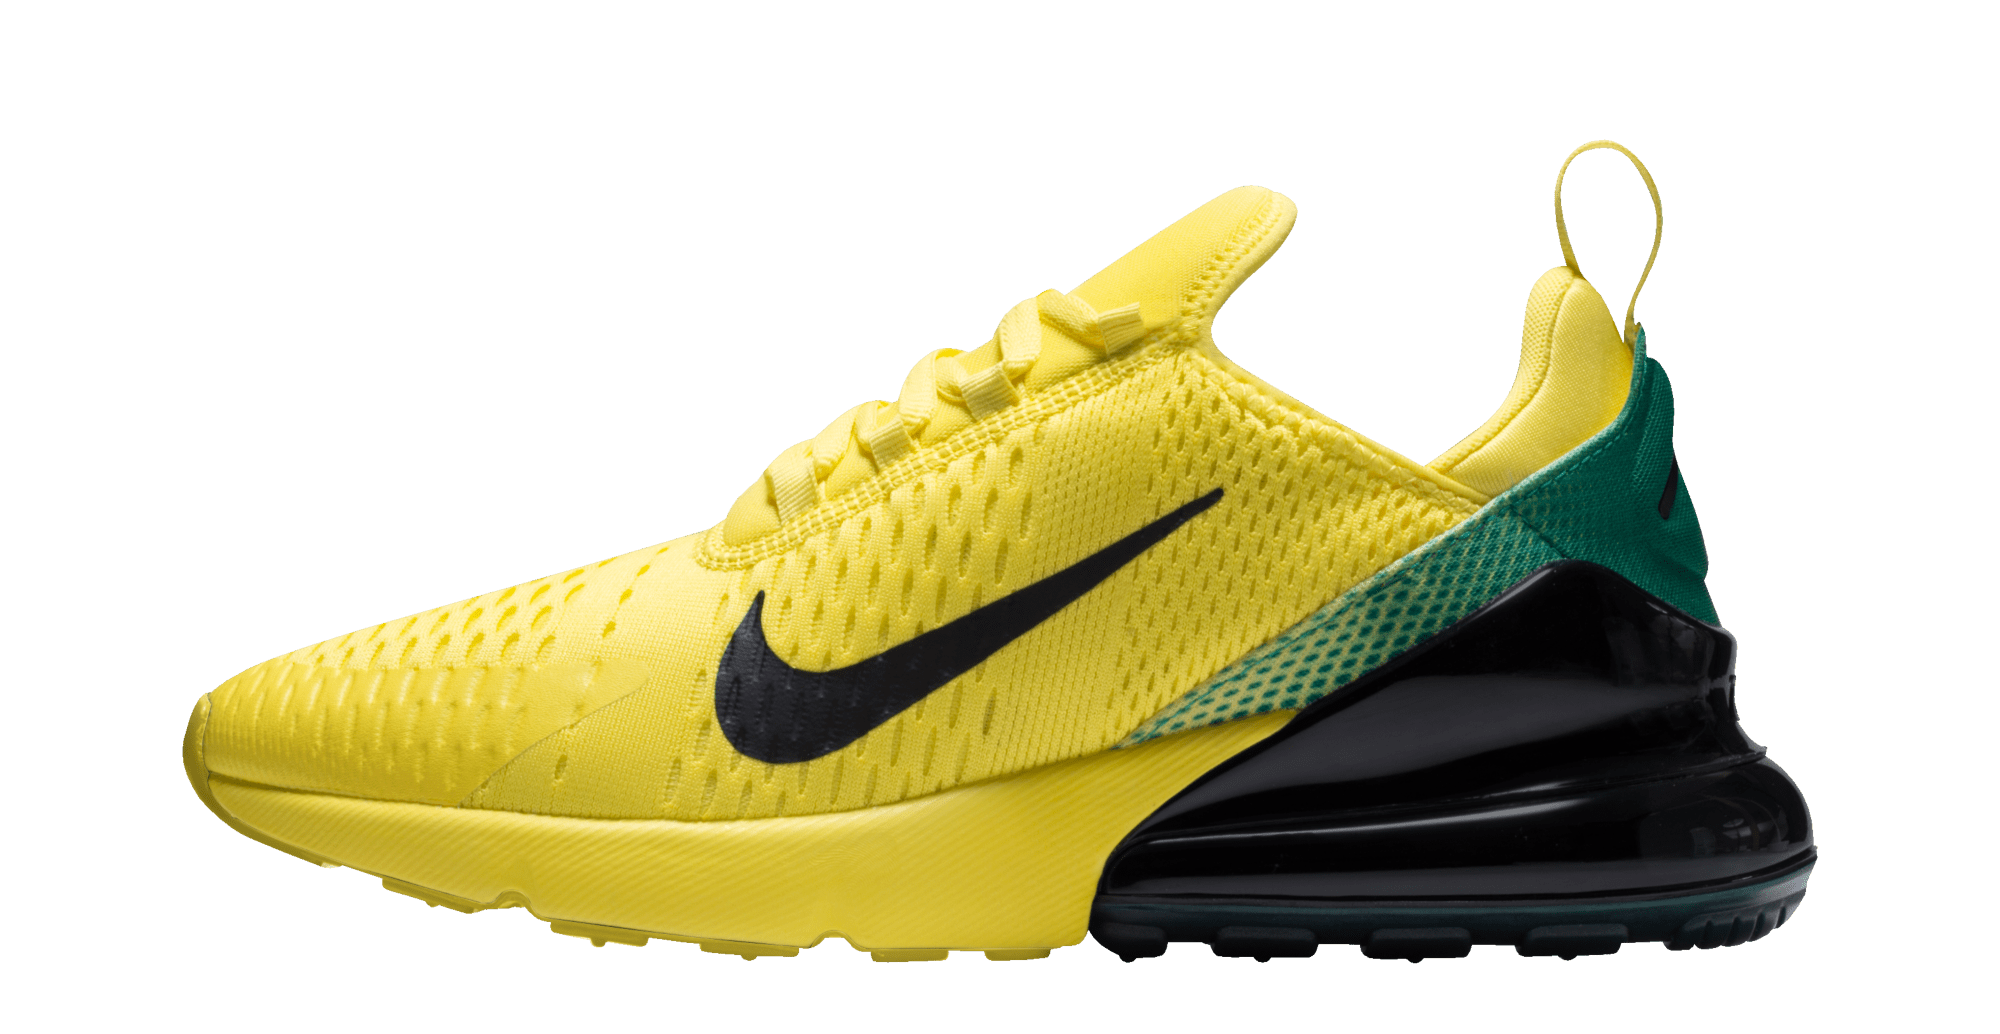 low priced c7d35 dd8d7 Nike Mercurial Heritage Air Max 270 iD Options | Sole Collector